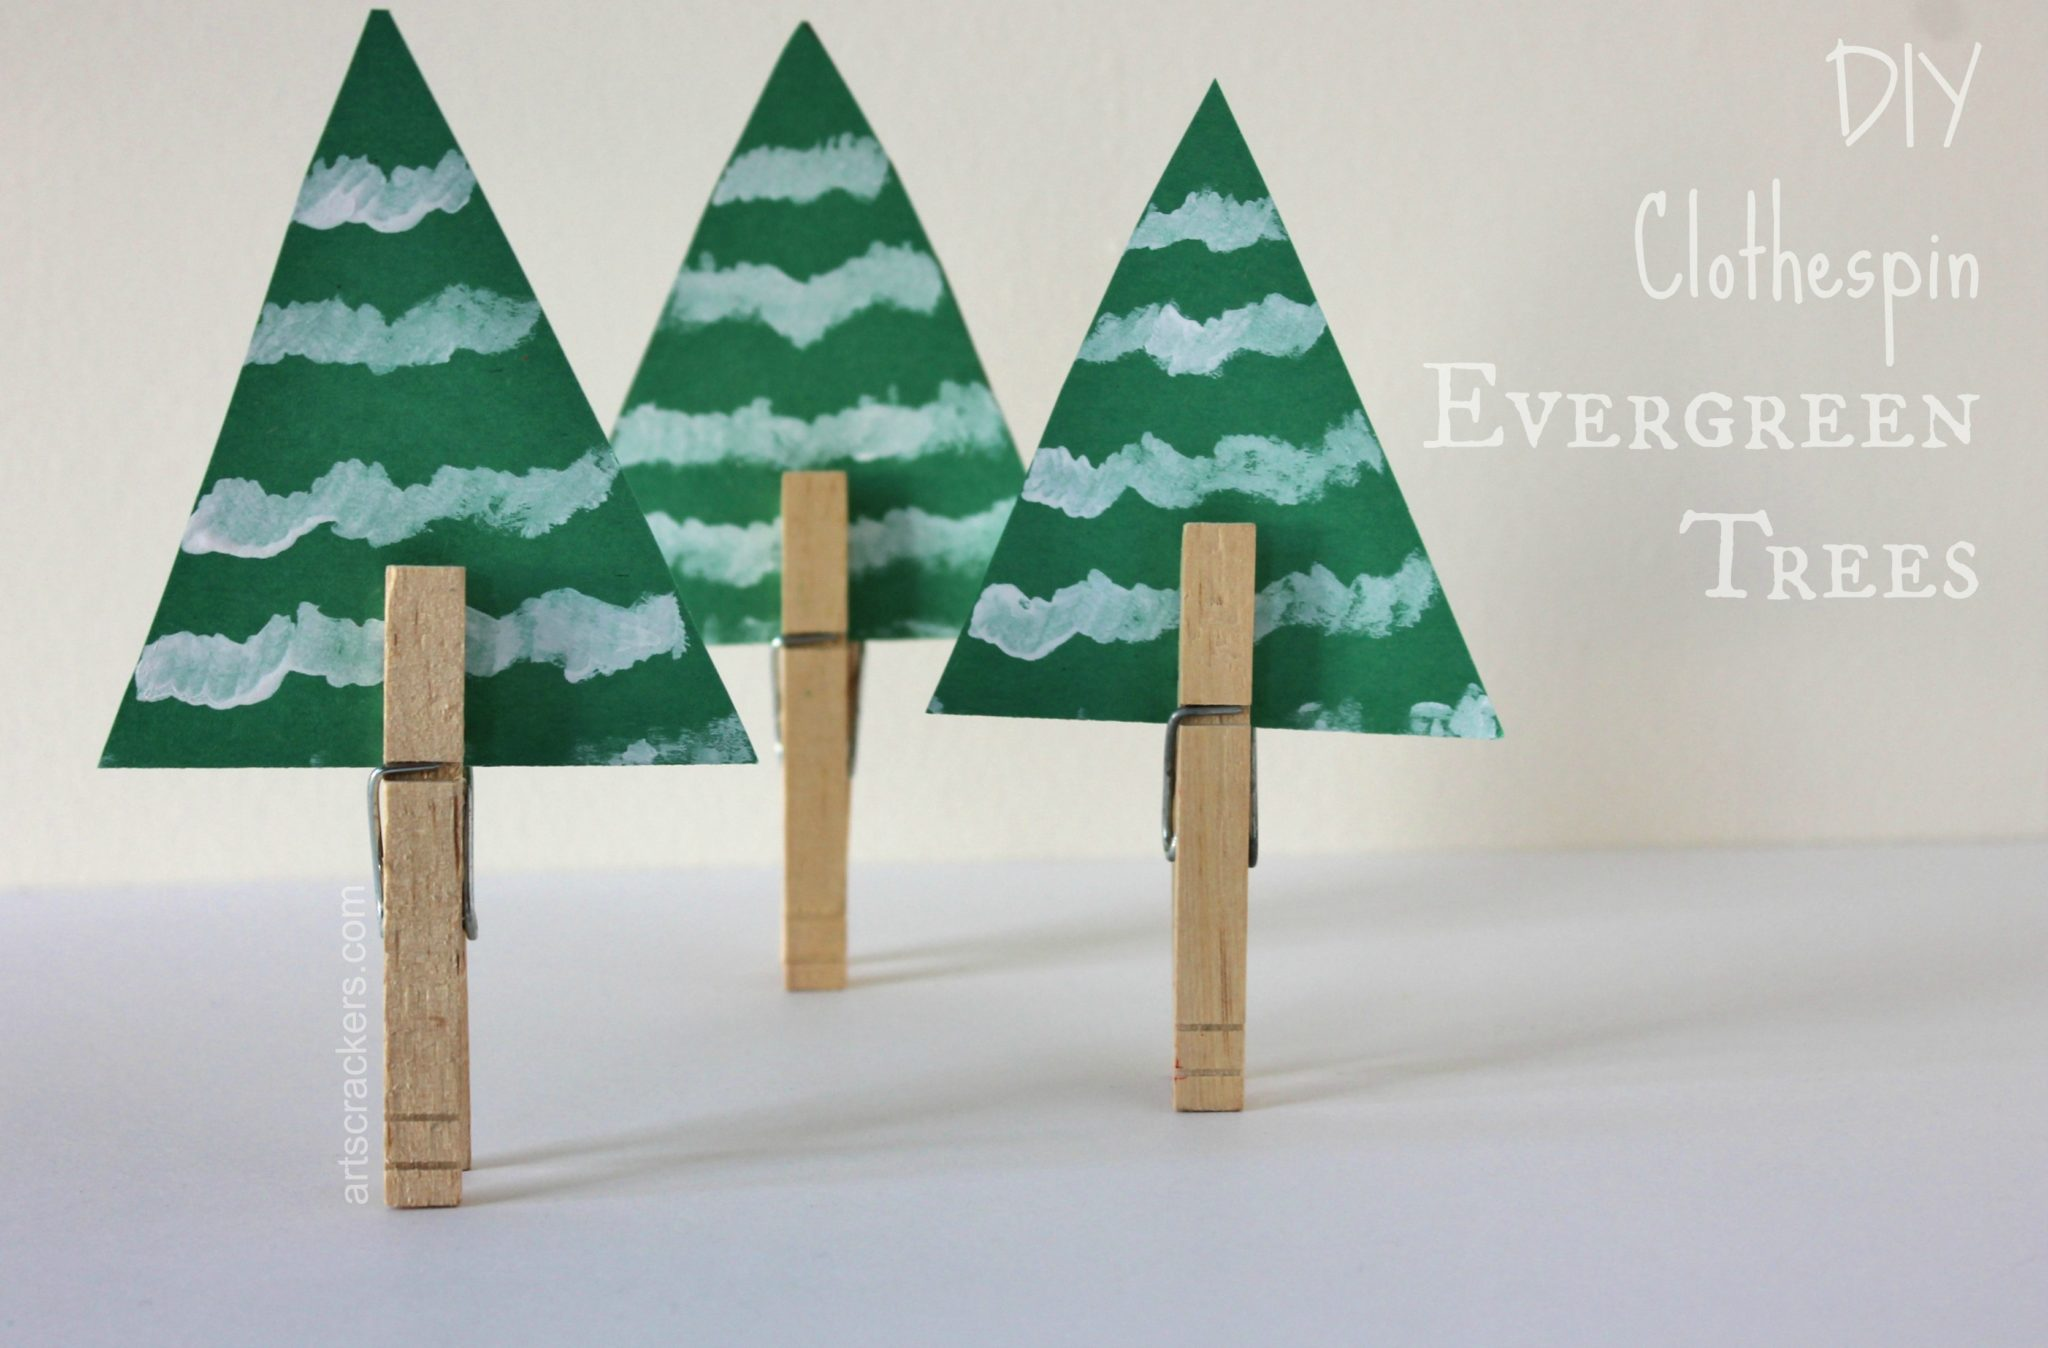 Clothespin Evergreen Trees